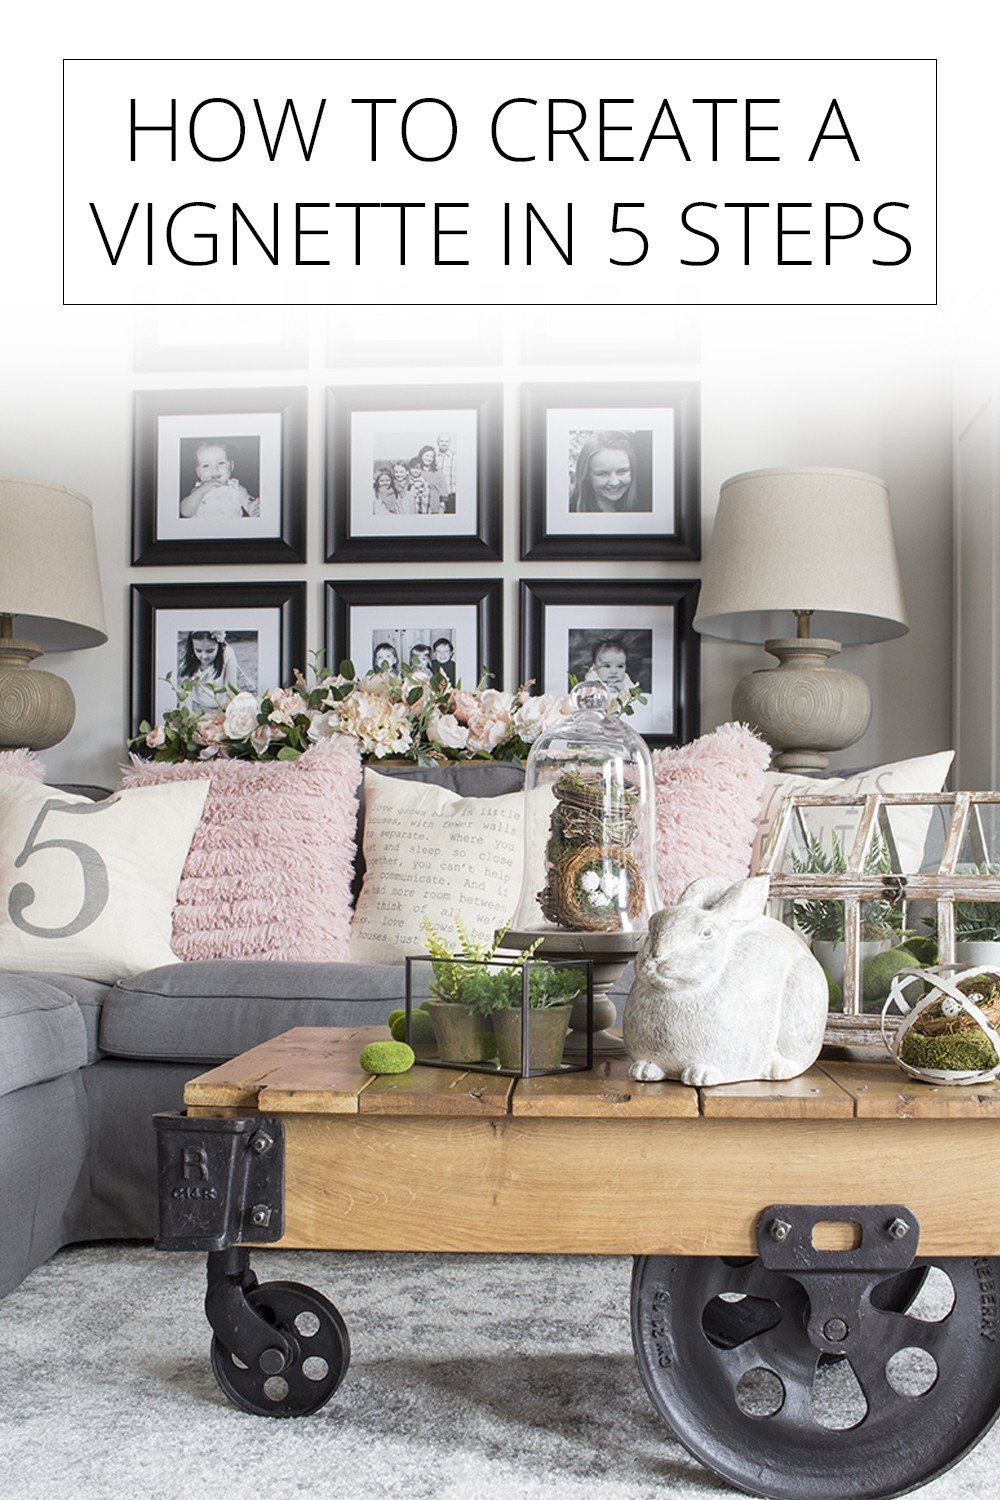 how to create a vignette in 5 steps